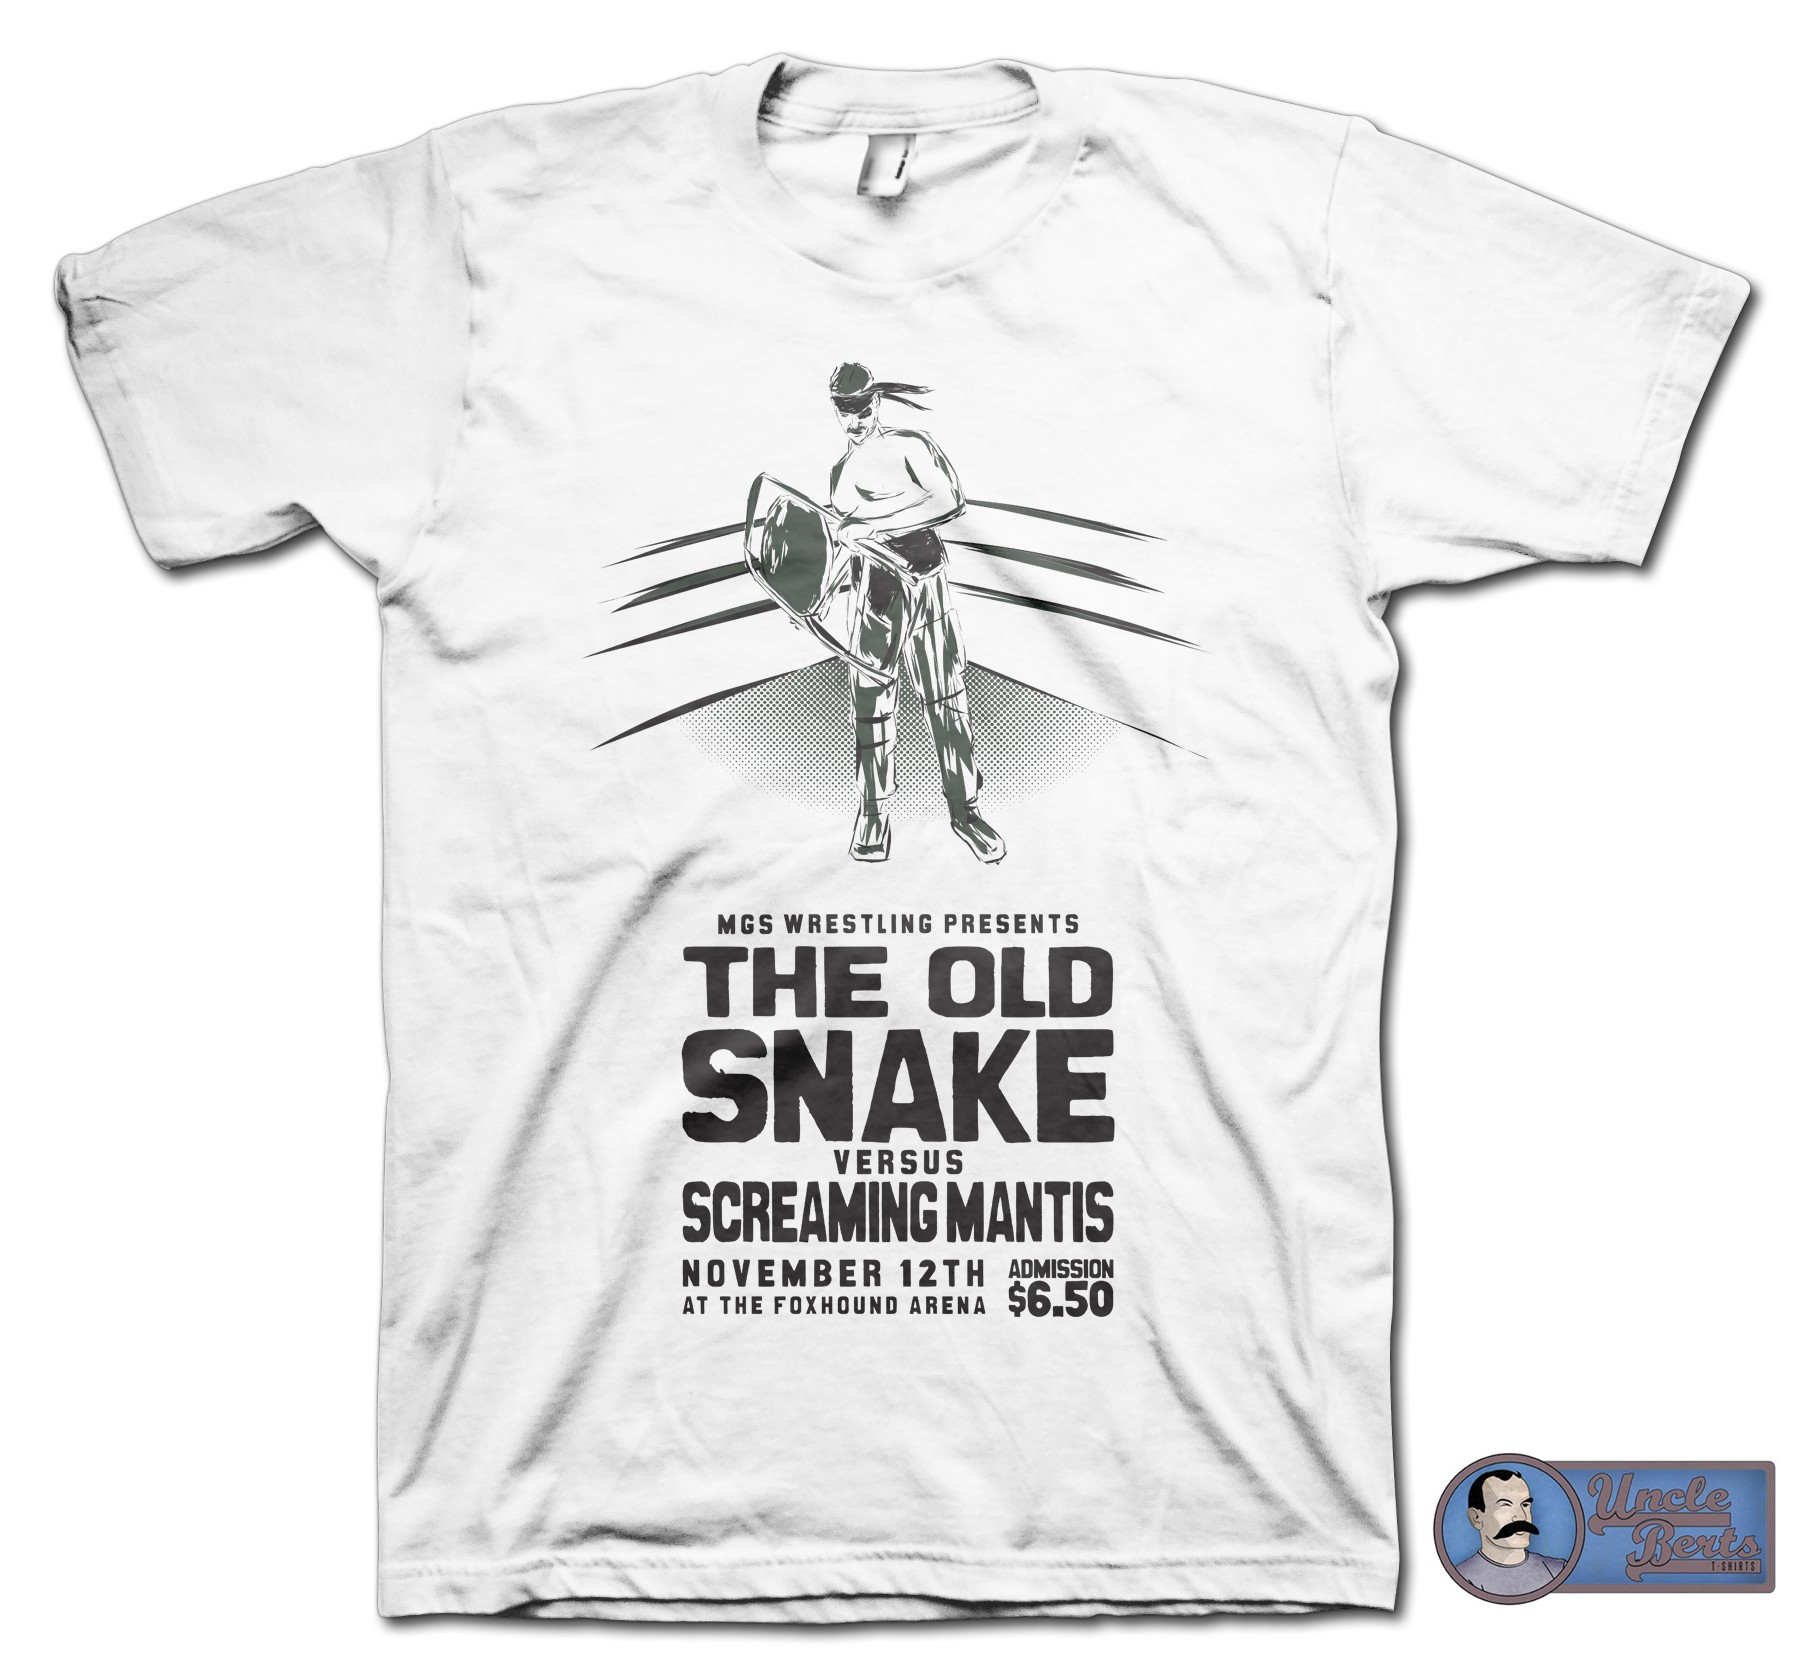 The Old Snake Versus T-Shirt - inspired by the Metal Gear Solid series